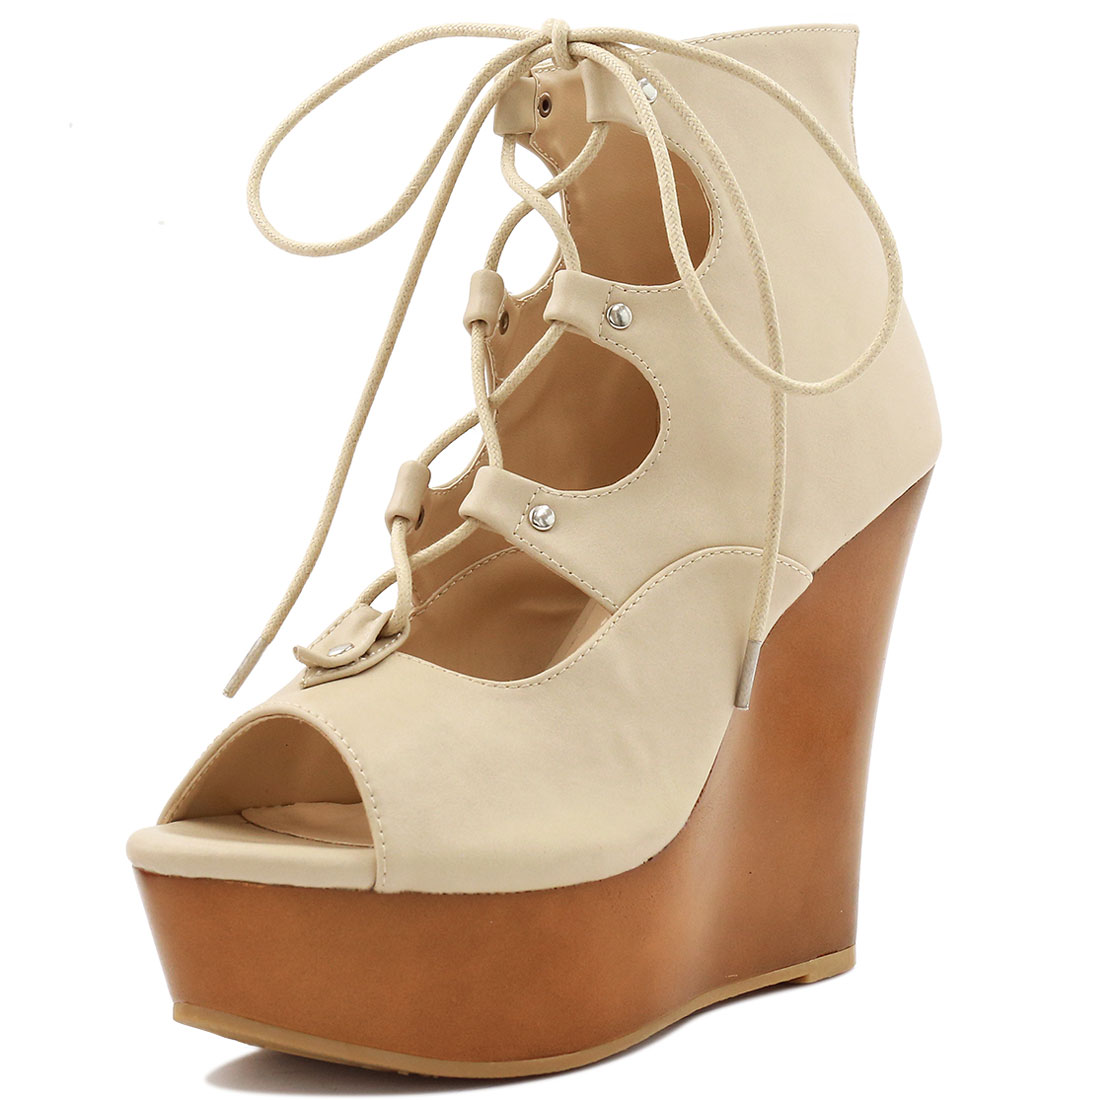 Woman Peep Toe Lace-Up Cutout Platform Wedge Sandals Beige US 9